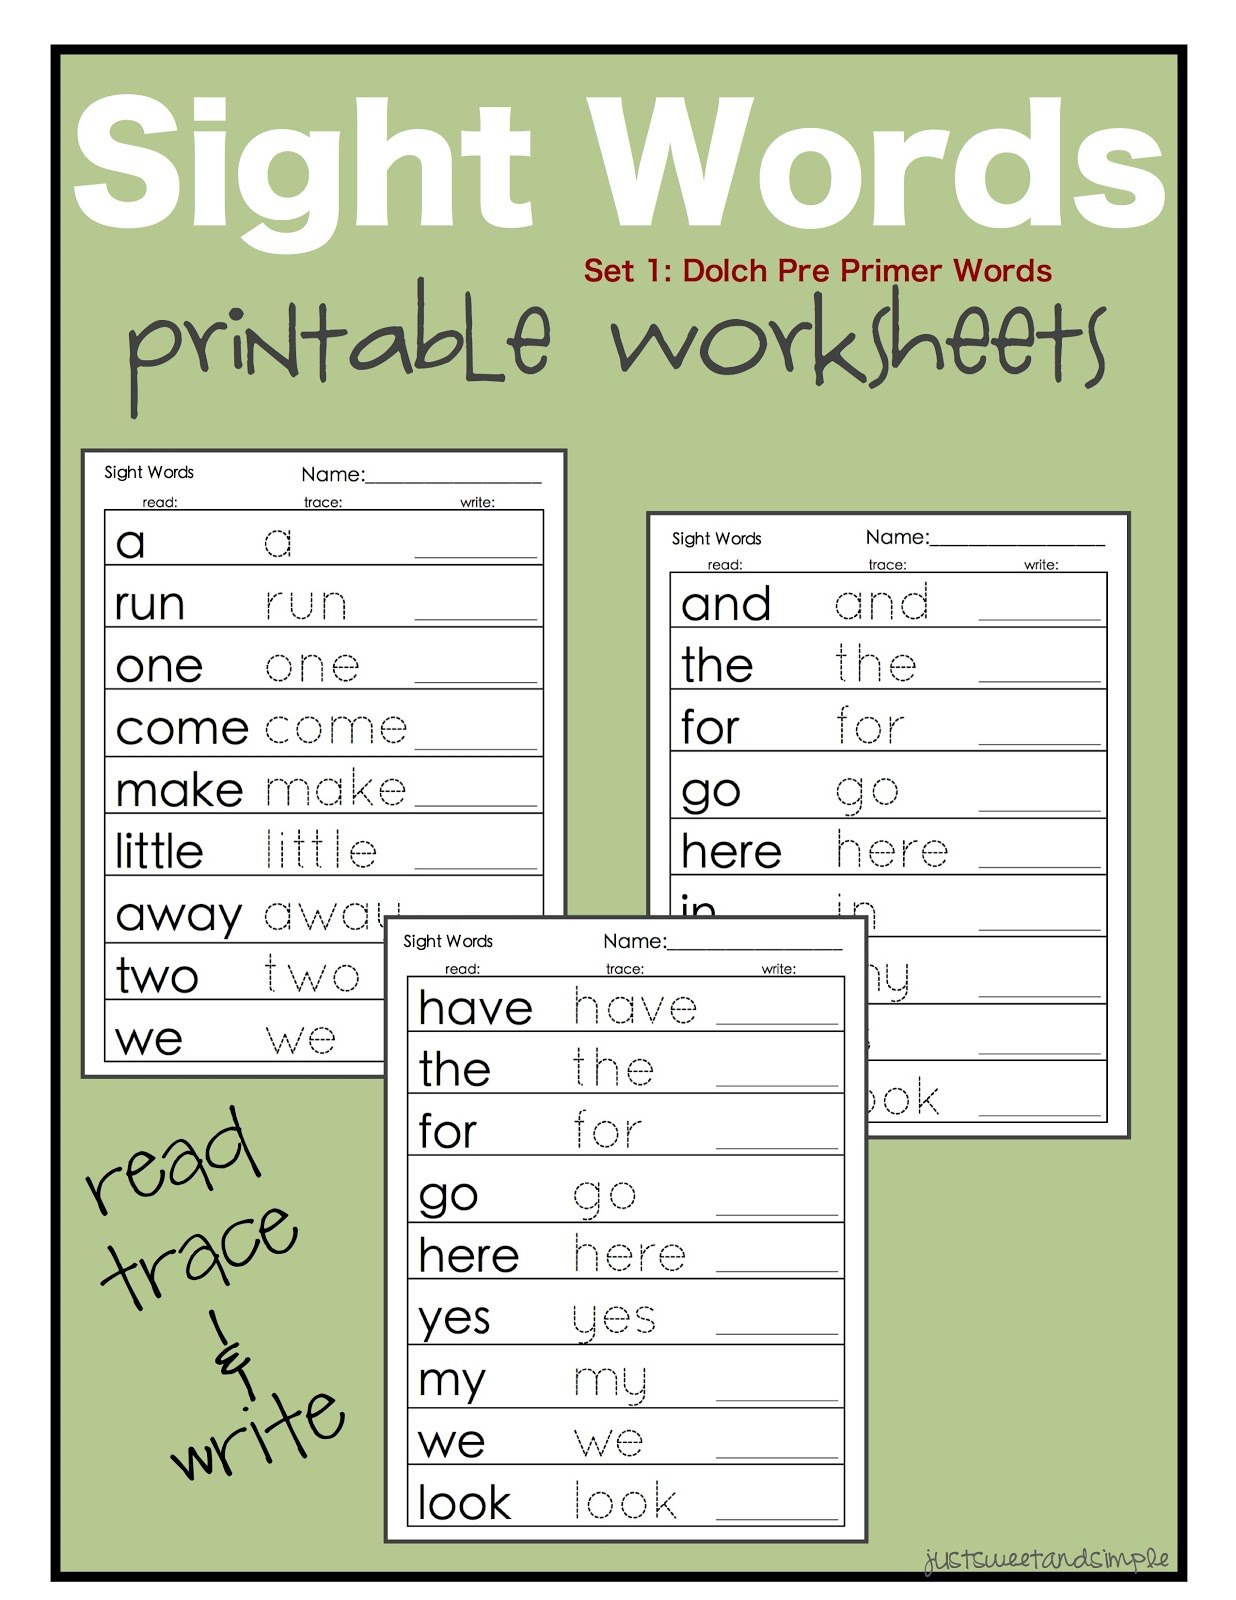 Words worksheet for sight other his all worksheets  Sight include of the word my Dolch that